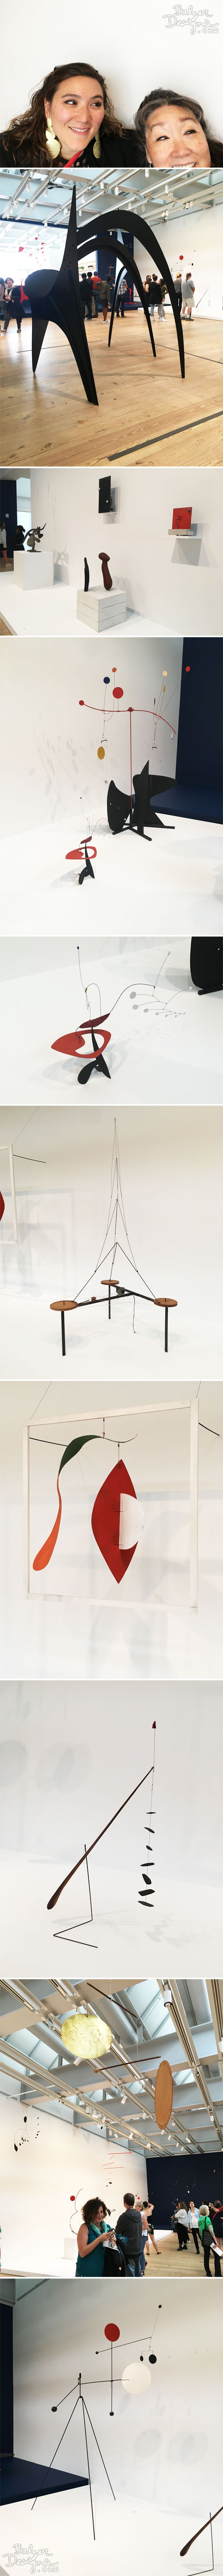 From the Balzer Designs Blog: Calder at the Whitney